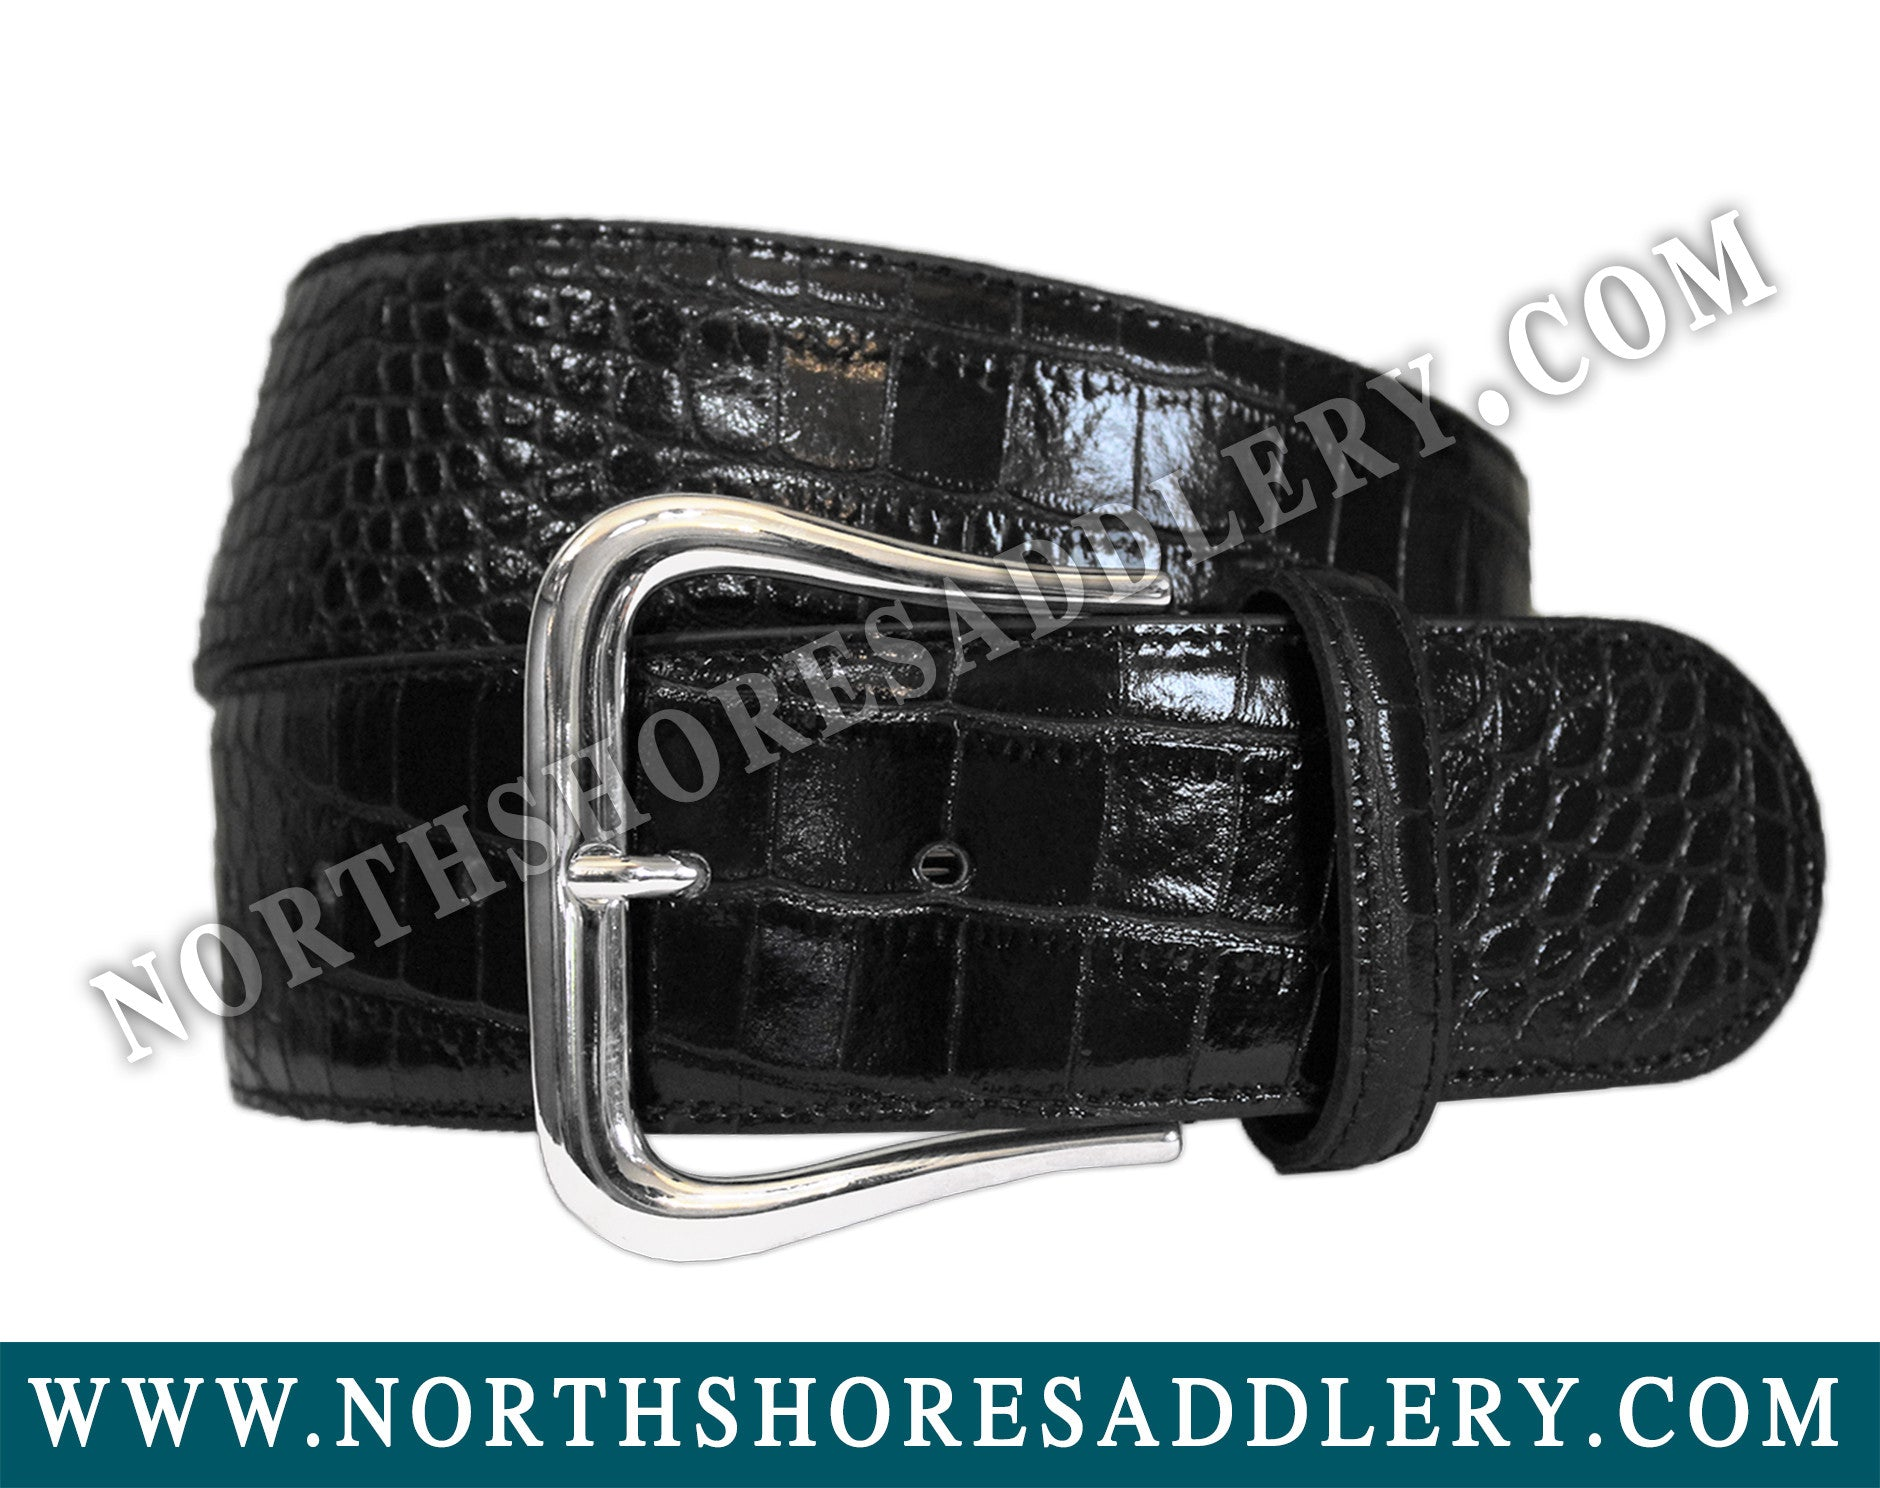 Tailored Sportsman Skin Flick Crocodile Leather Belt